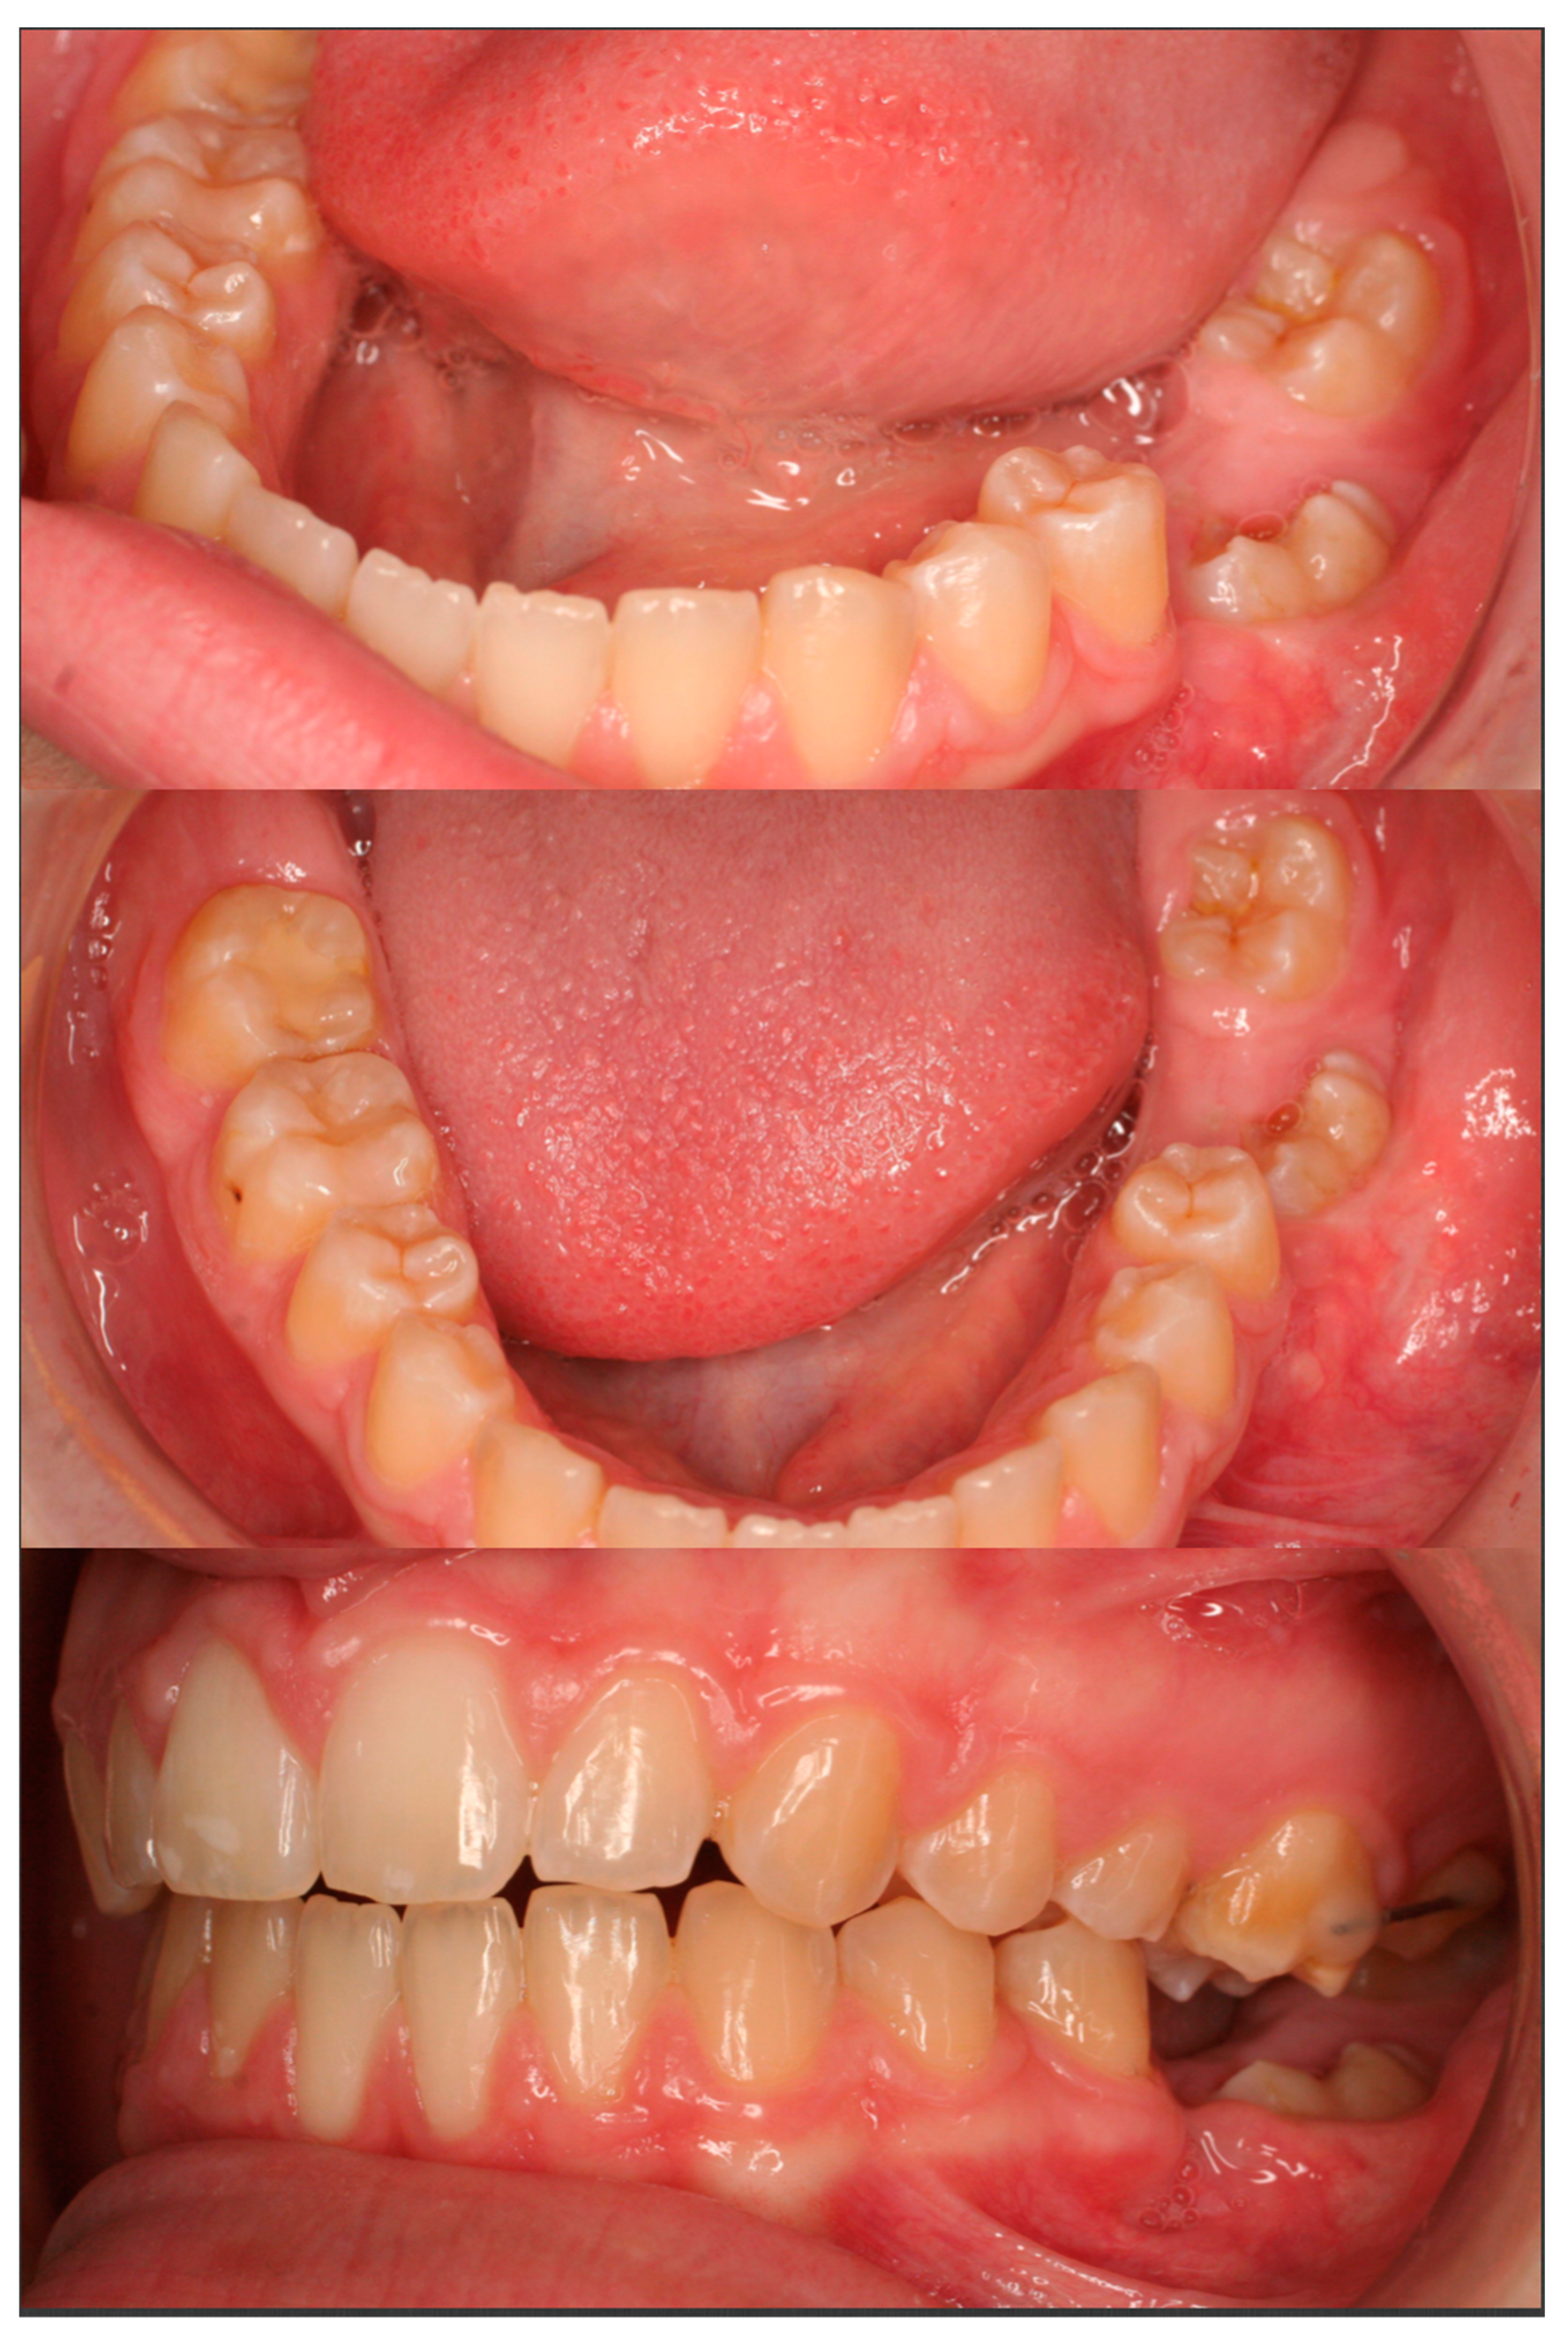 Dentistry Journal | Free Full-Text | Uprighting an Impacted